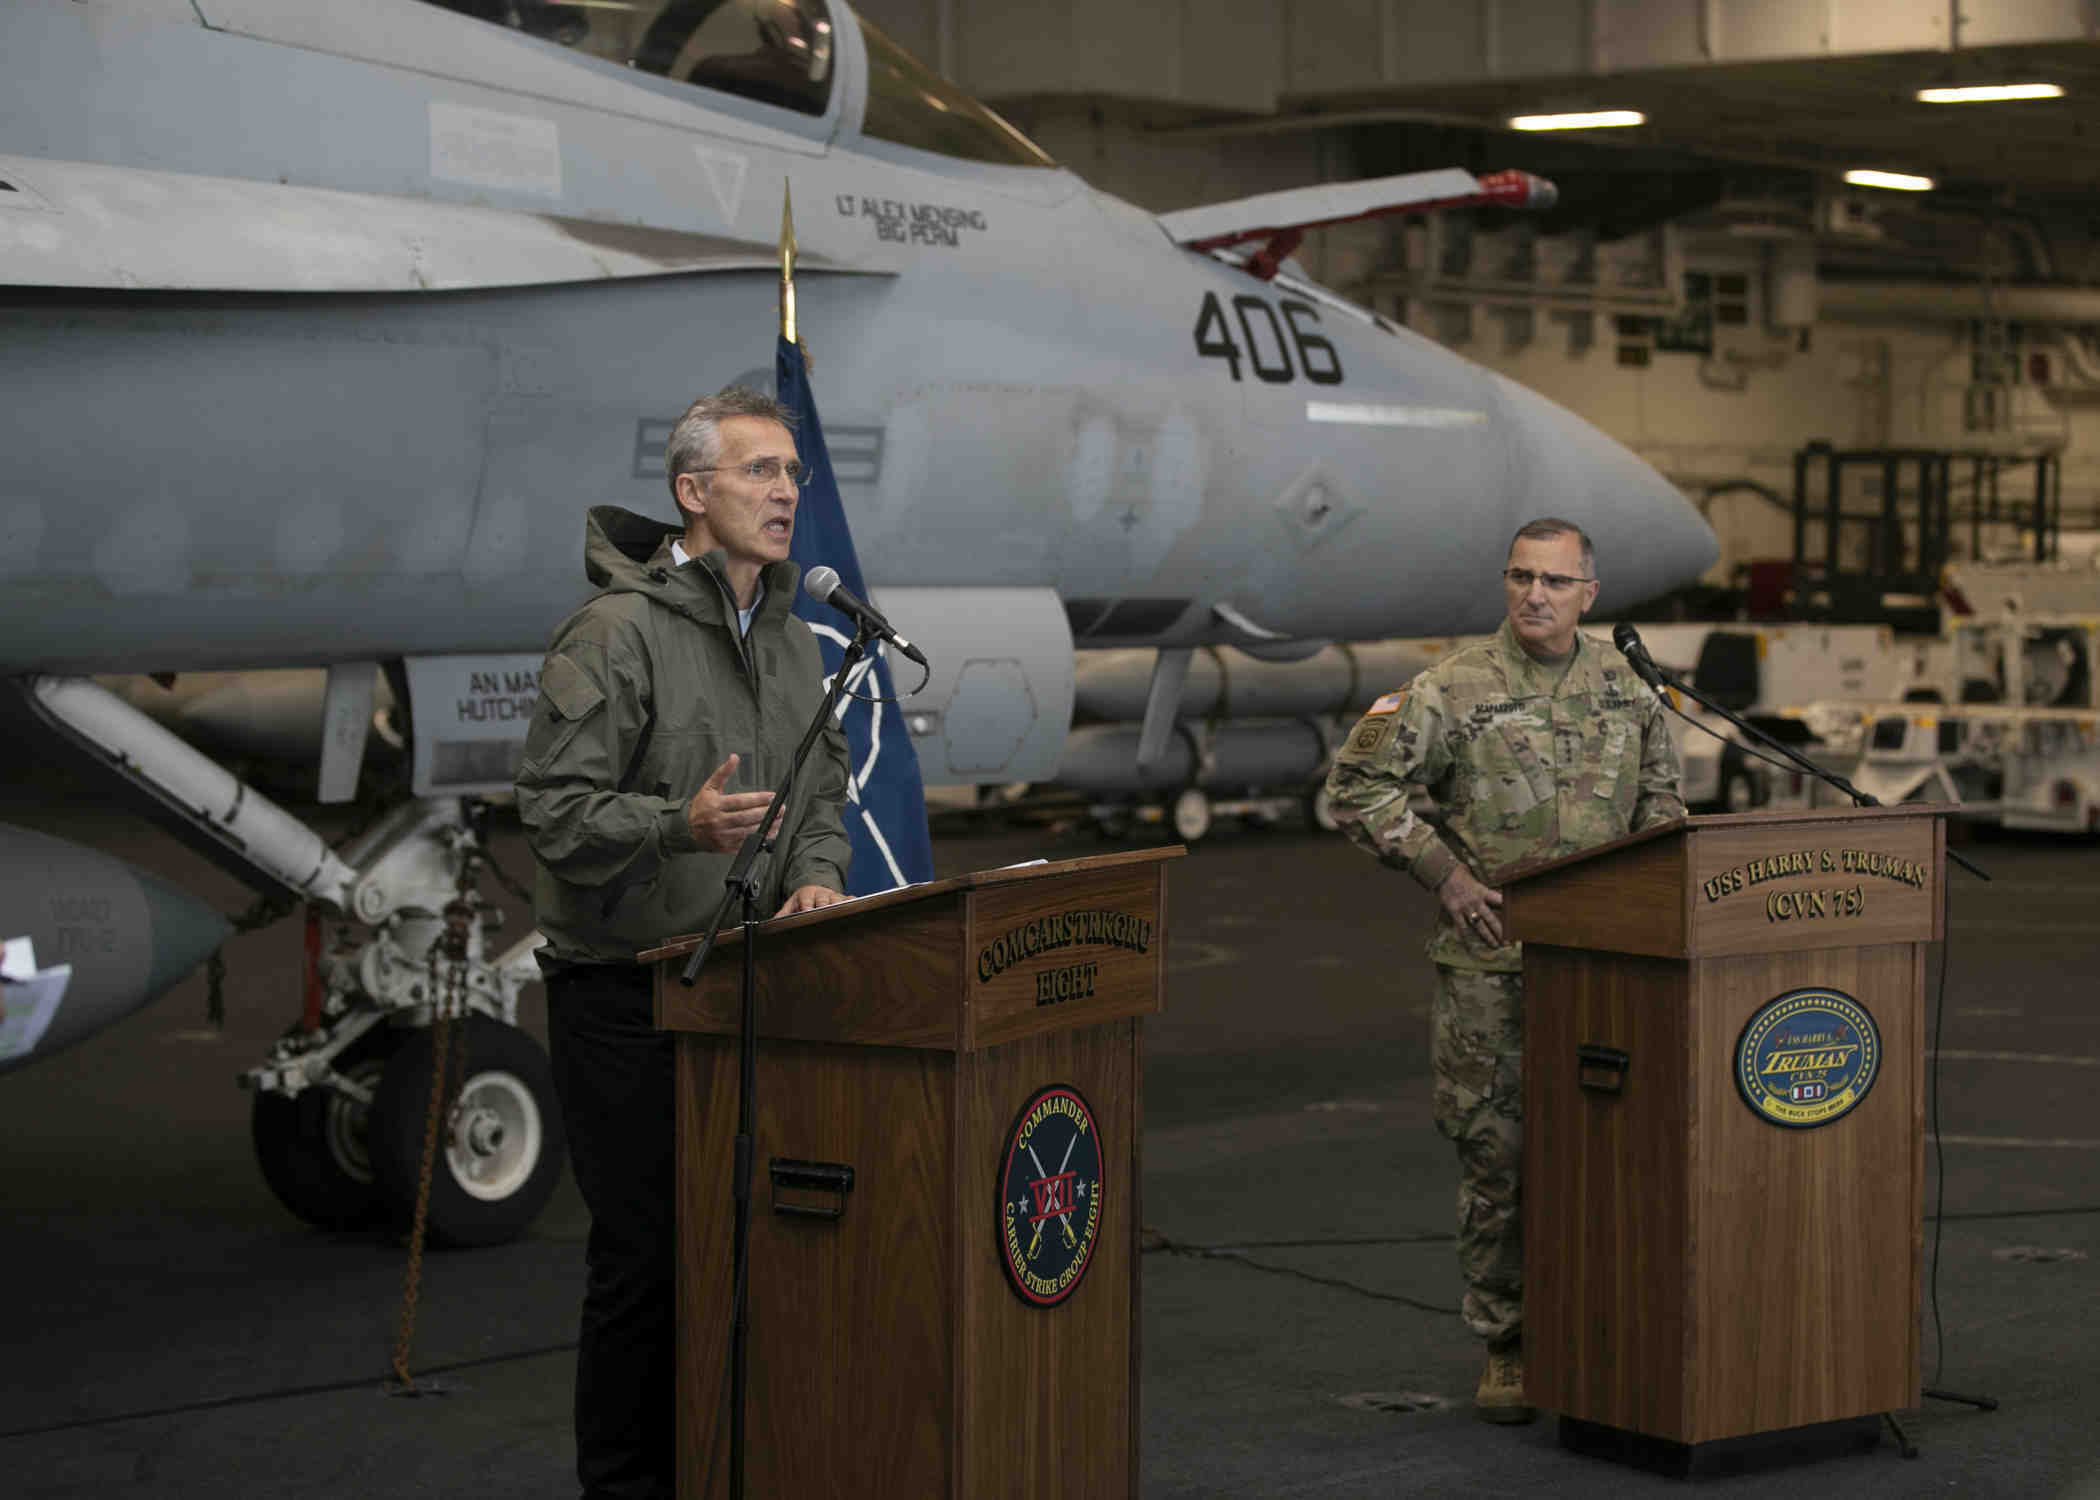 181012-N-XS424-0228 NORTH SEA (Oct. 12, 2018) NATO Secretary General Jens Stoltenburg, left, and Supreme Allied Commander Europe, Gen. Mike Scaparrotti speak at a press conference in the hangar bay aboard the Nimitz-class aircraft carrier USS Harry S. Truman (CVN 75). Currently operating in the U.S. Sixth Fleet area of operations, Harry S. Truman will continue to foster cooperation with regional allies and partners, strengthen regional stability, and remain vigilant, agile and dynamic. (U.S. Navy photo by Mass Communication Specialist 3rd Class Sean Elliott/Released)